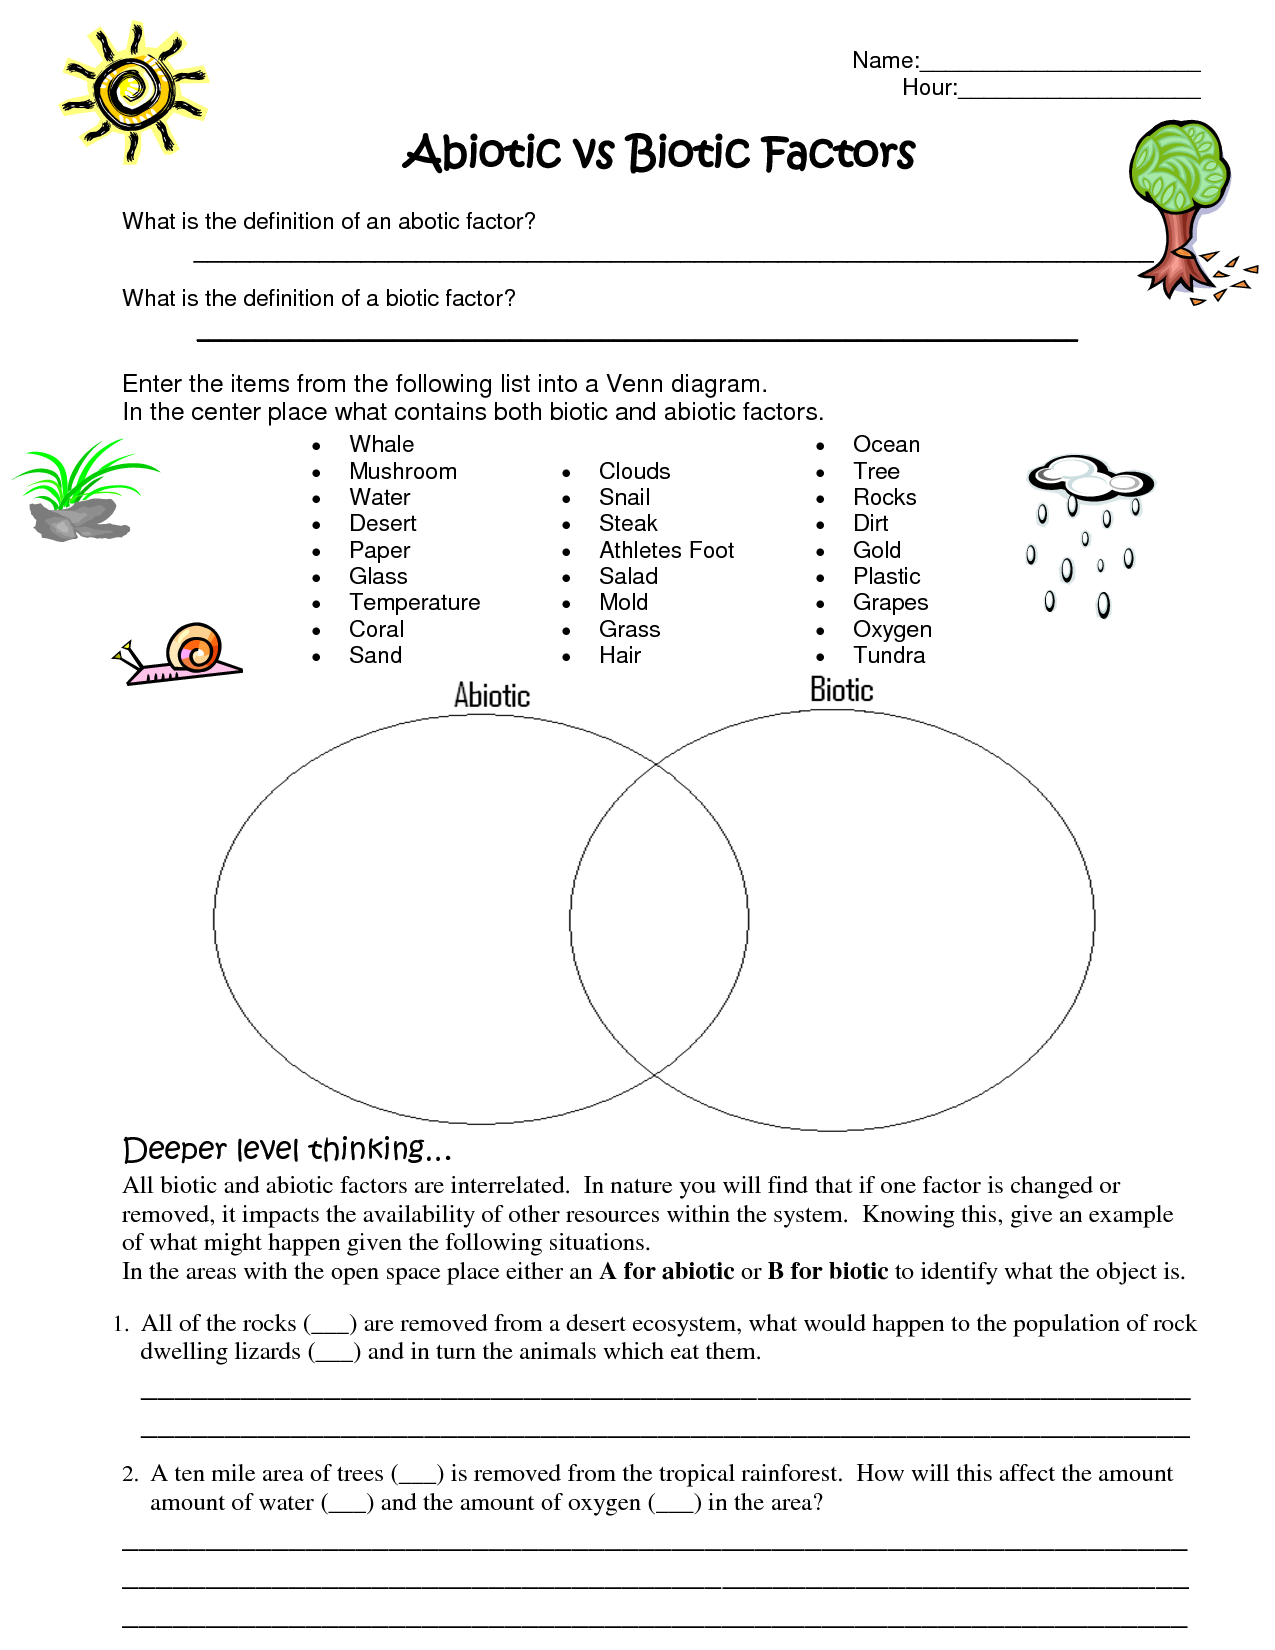 Abiotic vs Biotic Factors Nature Walk FREEBIE – Abiotic and Biotic Factors Worksheet